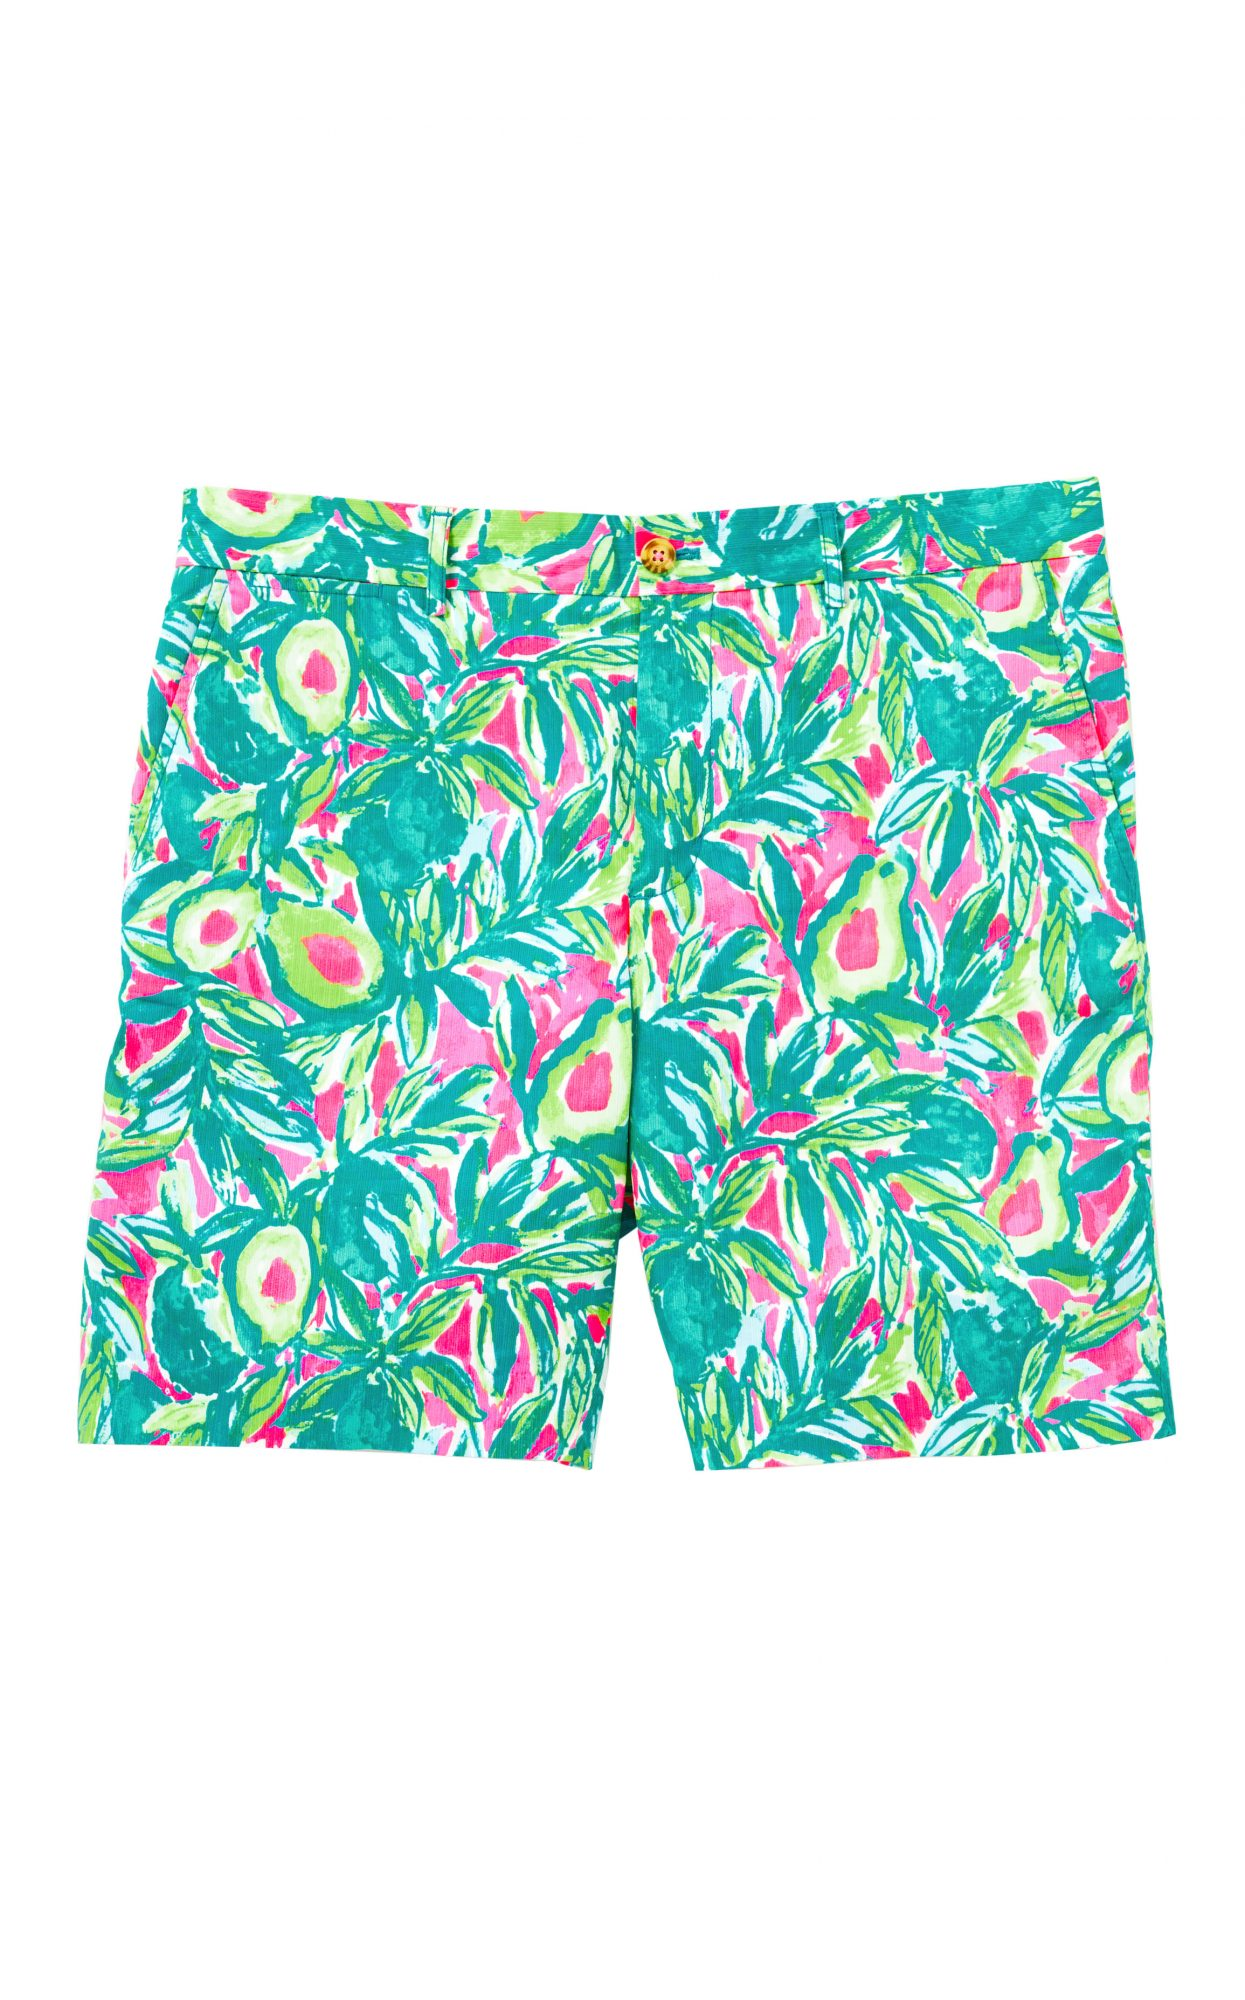 Men's Beaumont Short